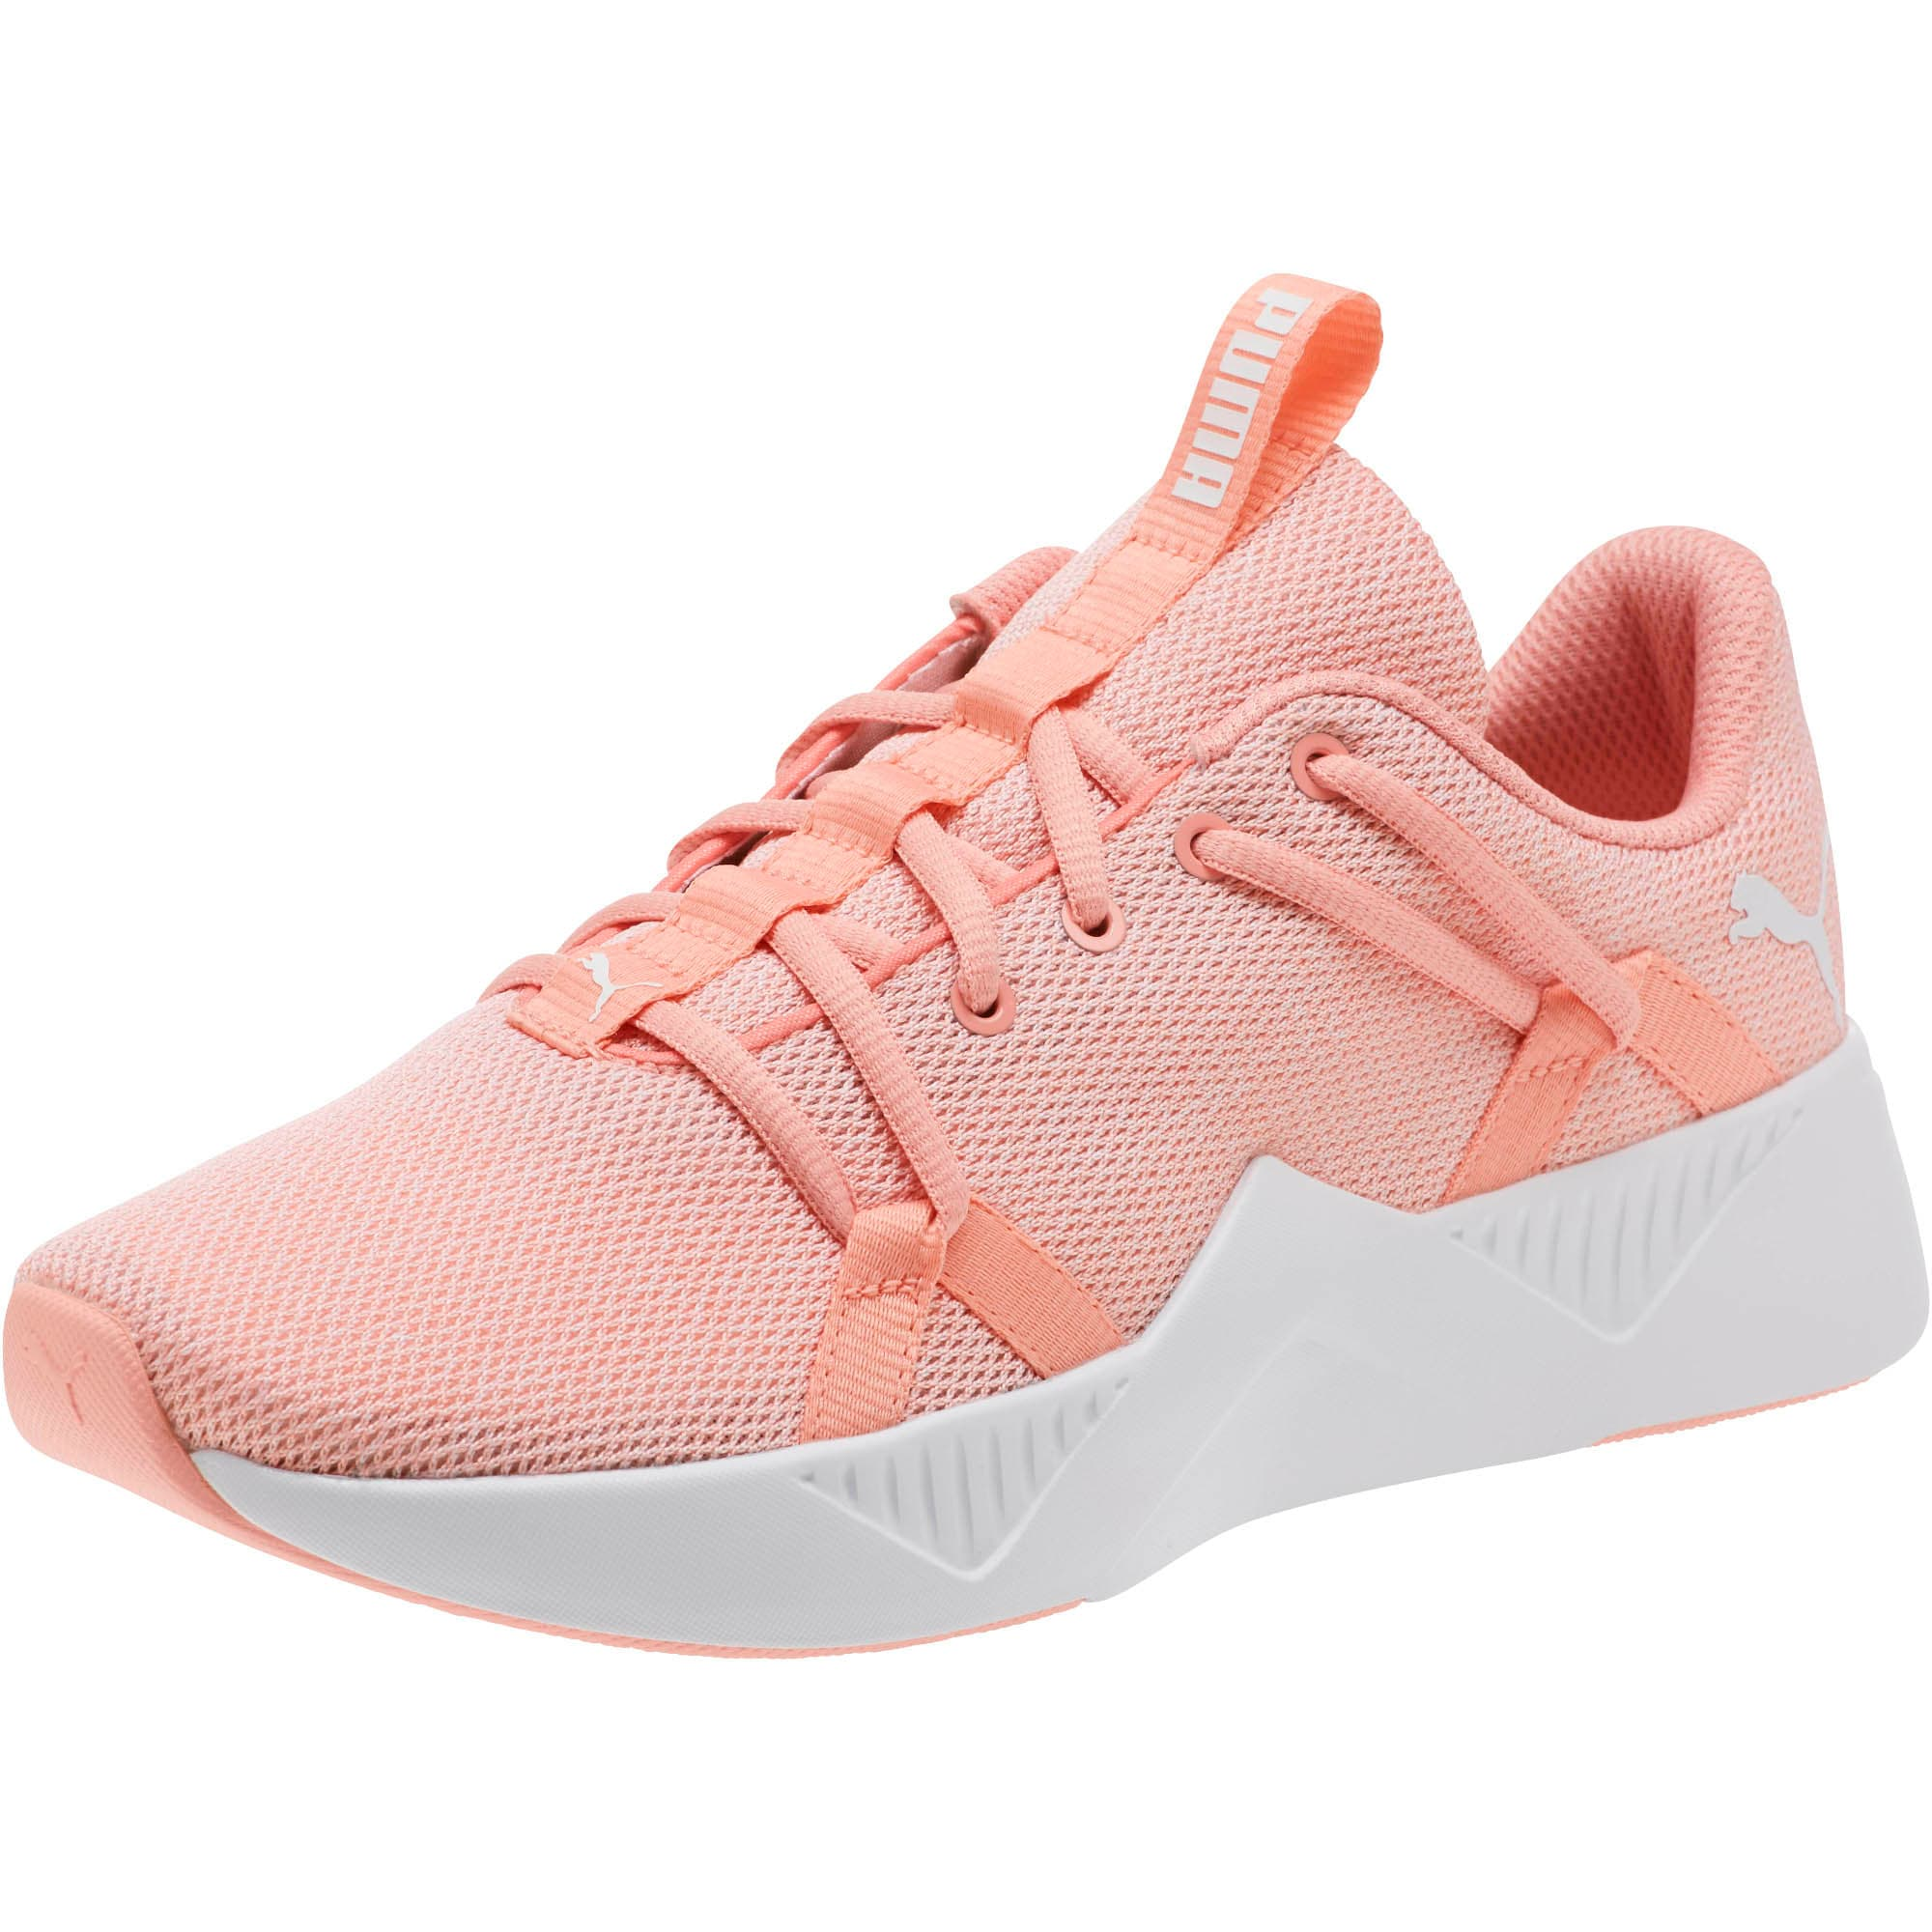 Incite Knit Women's Training Shoes, Peach Bud-Puma White, large